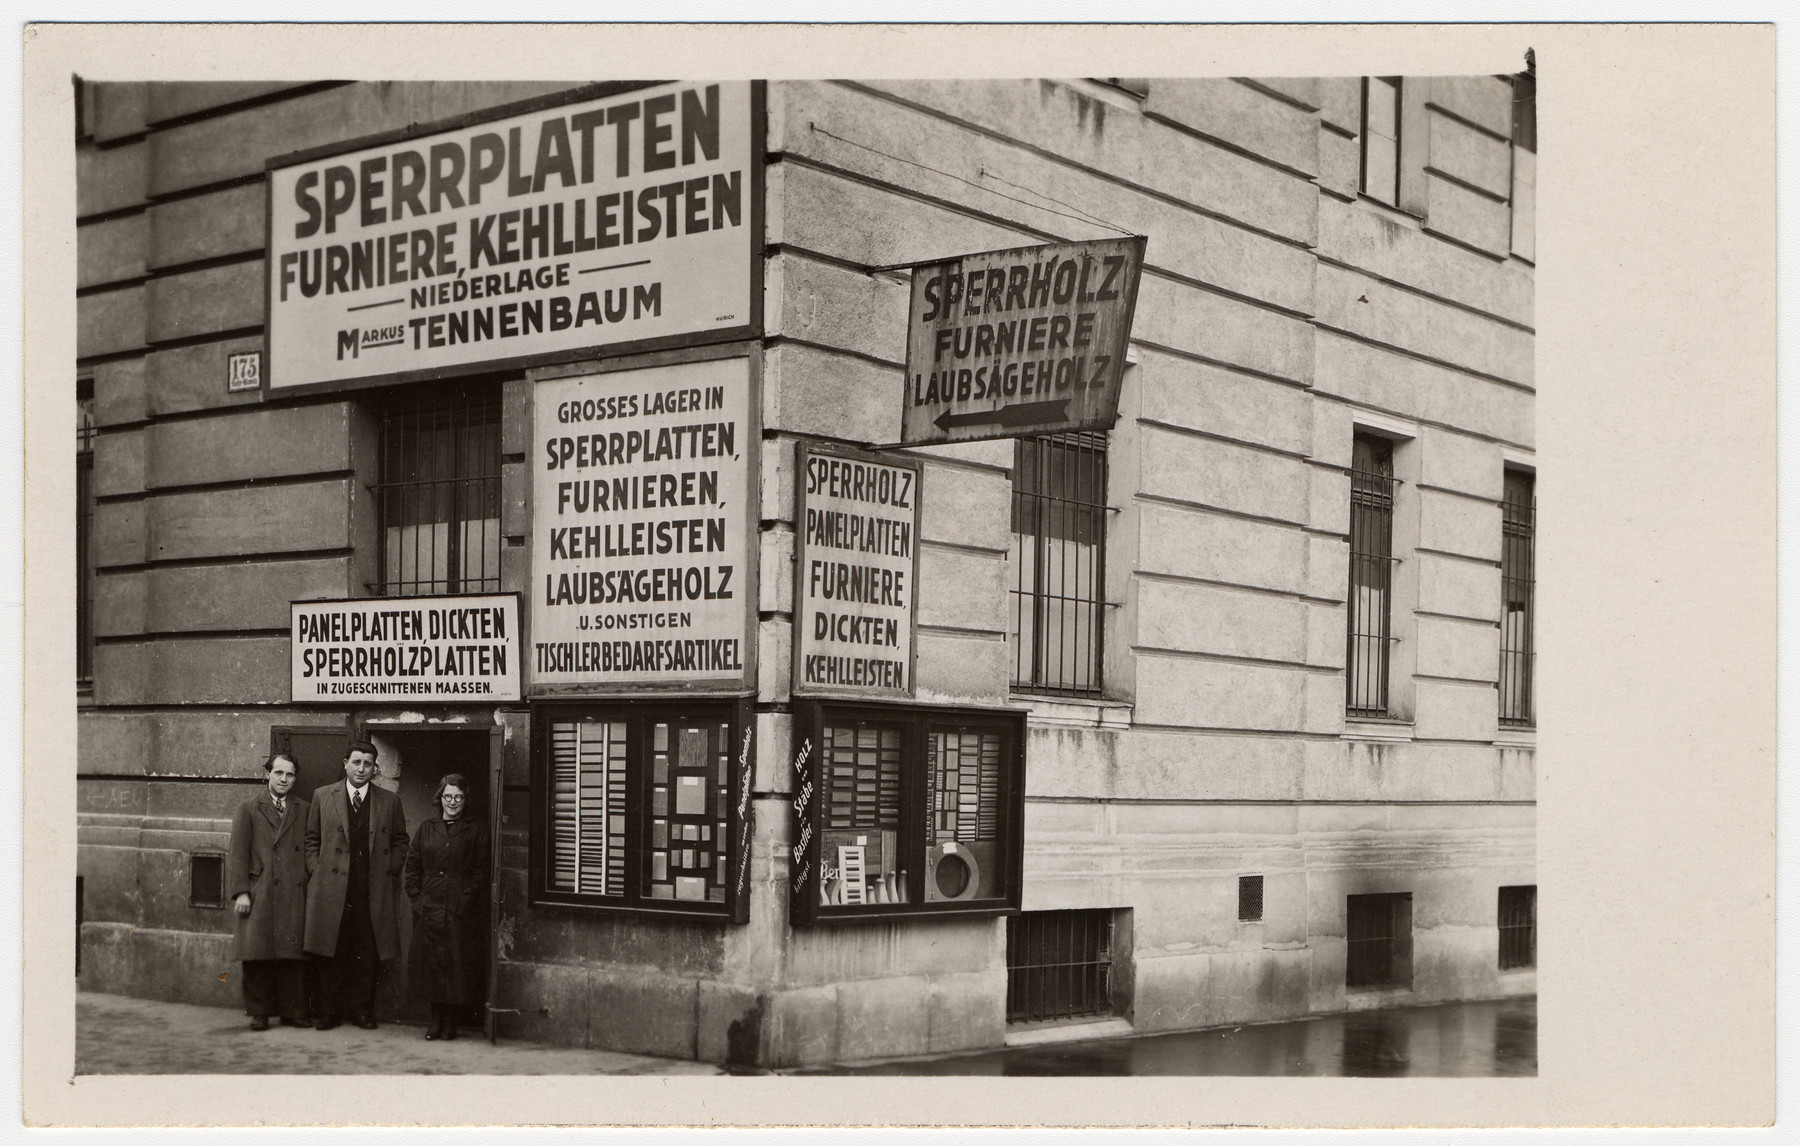 Mark Tennenbaum (middle), Hansel, and Deli Tetelbaum stand in front of Mark's warehouse in Vienna V Rechte Wienzeile 175.  The signs advertise items sold like plywood and veneer.